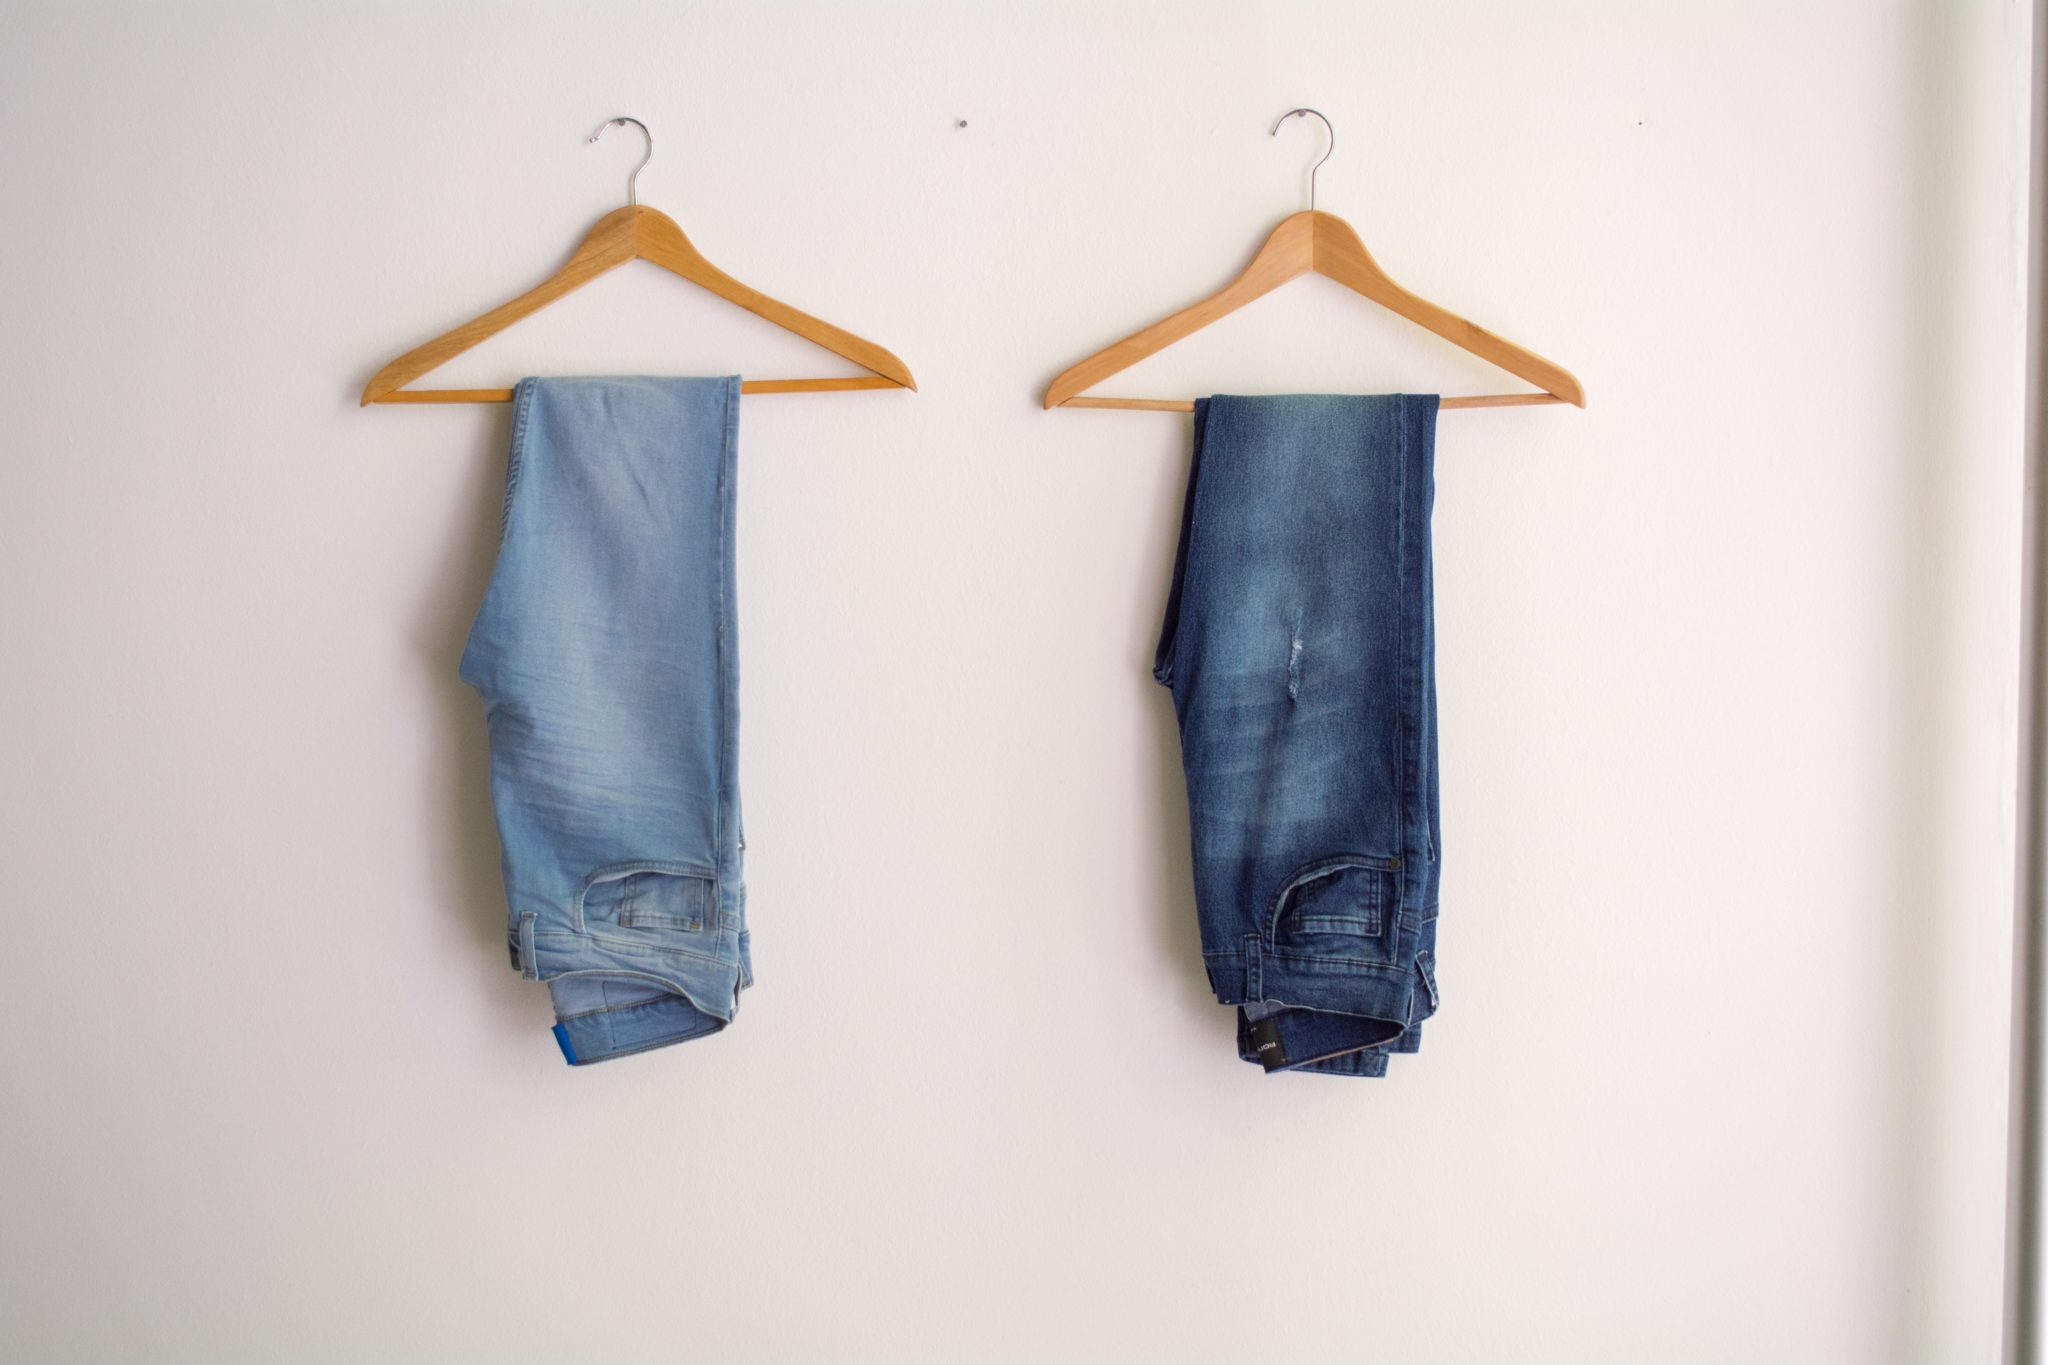 Wash and dry jeans and shrink